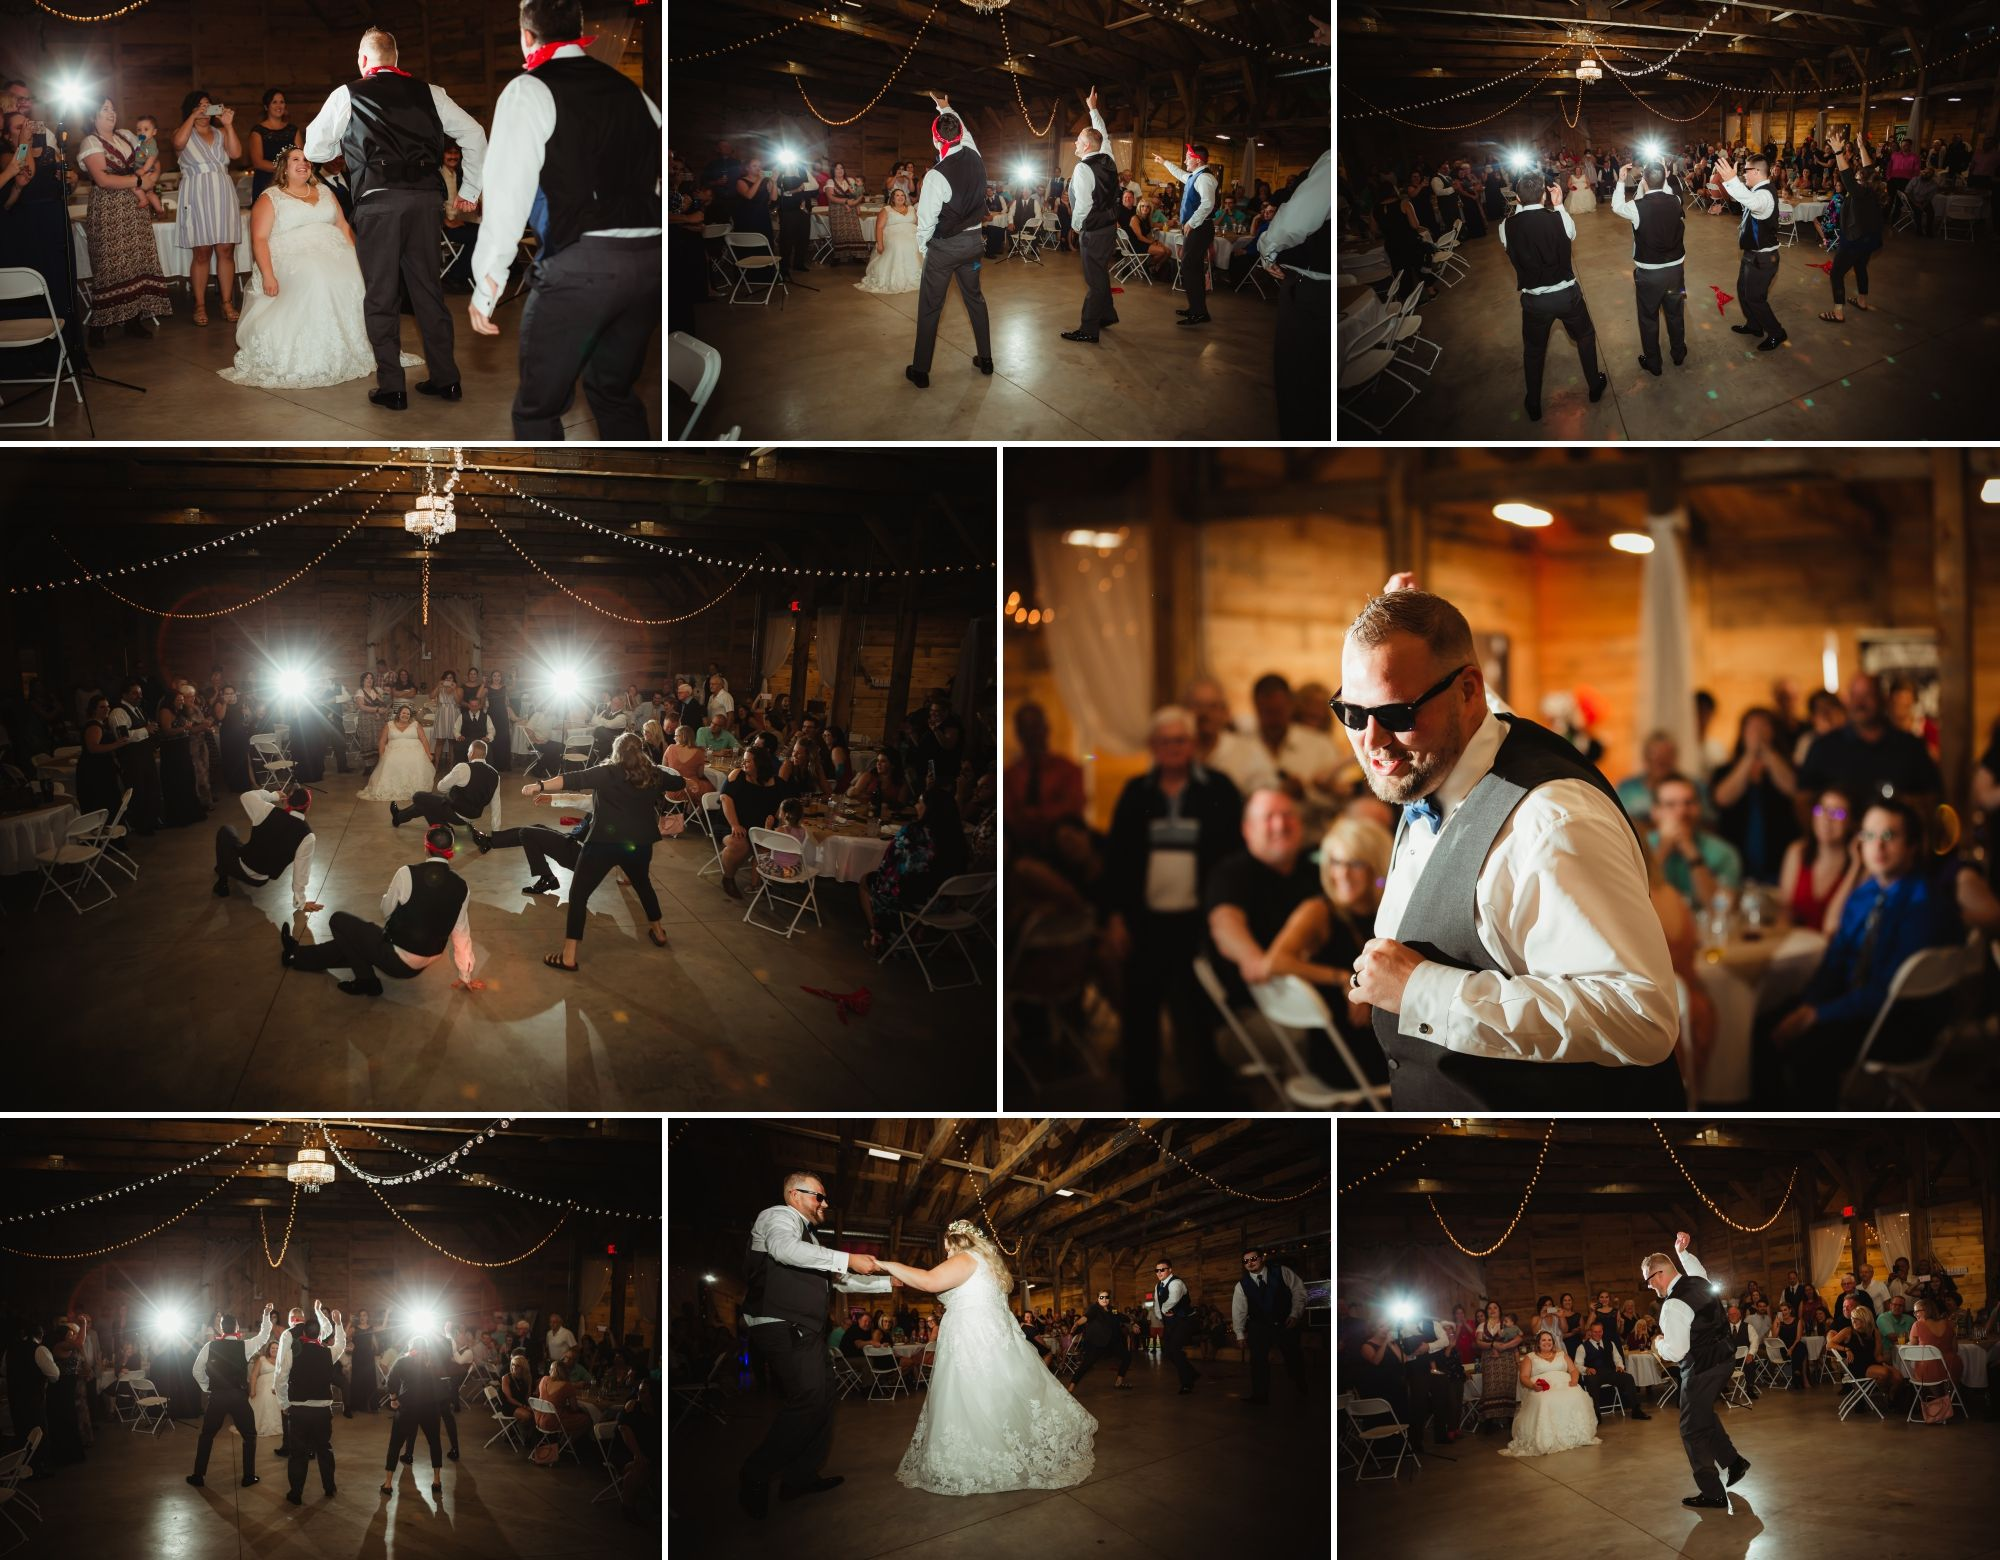 Collage of the groom, groomsmen, and groomswoman performing a funny dance around the bride in a chair.